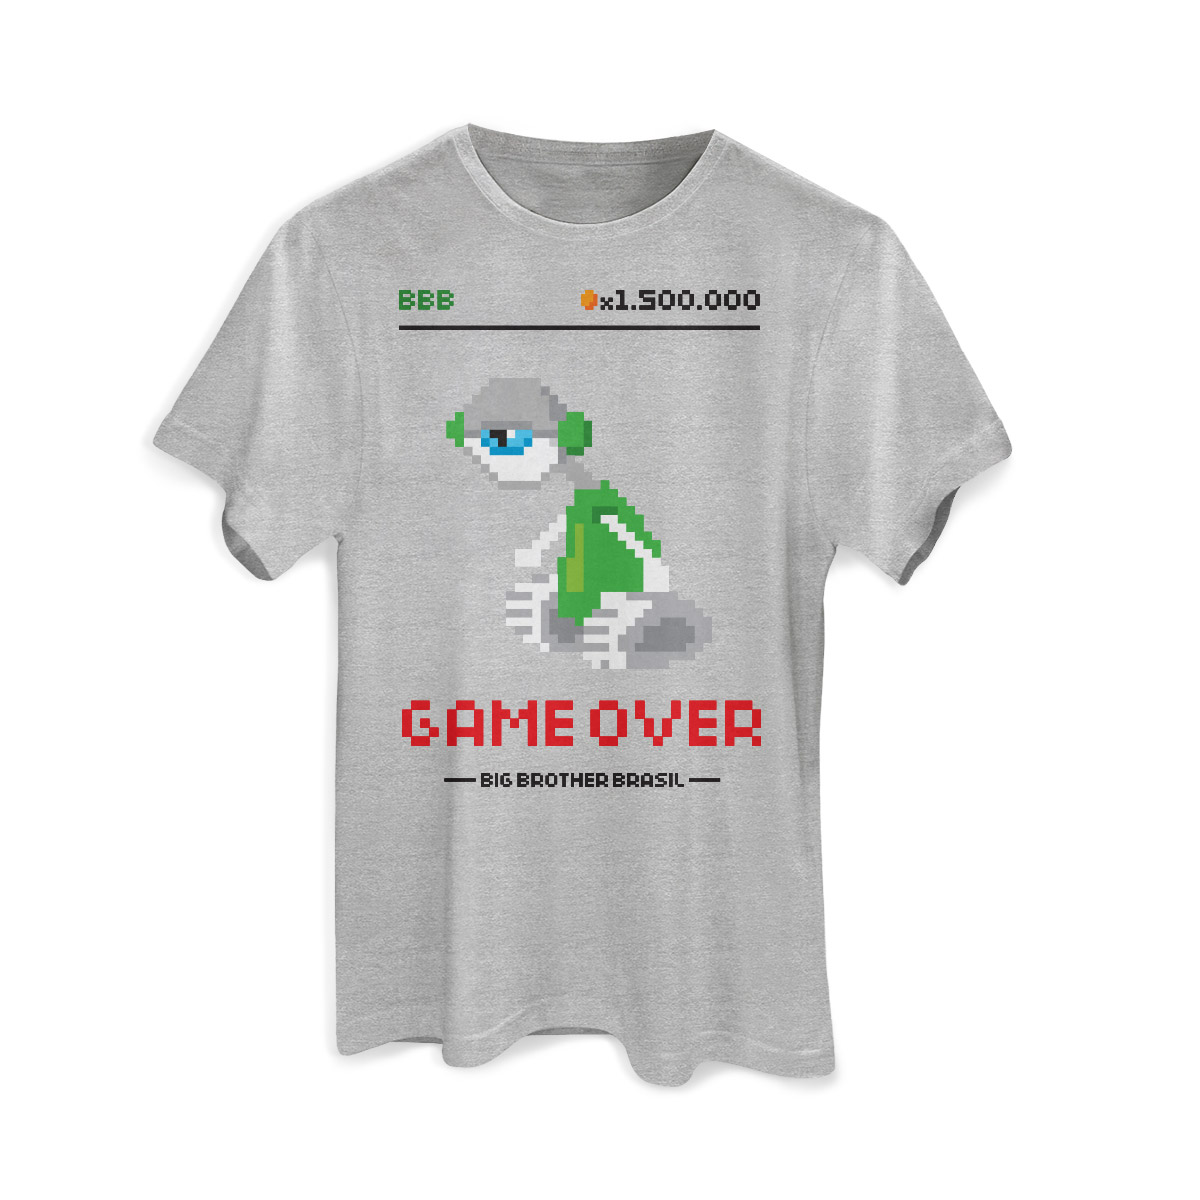 Camiseta Masculina Big Brother Brasil Game Over Modelo 2